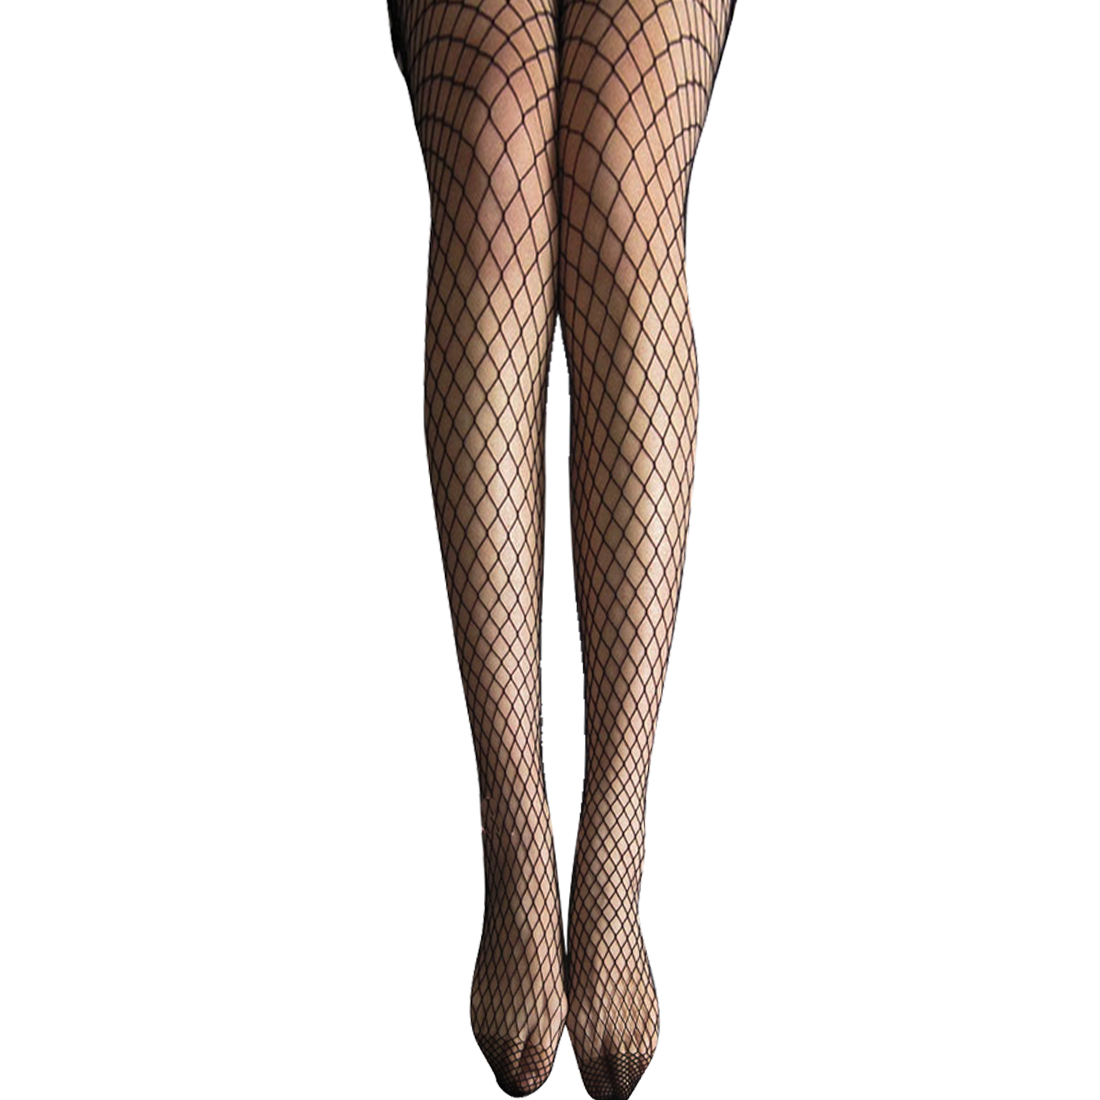 Ladies Sexy Black Big Fishnet Pantyhose Leggings Tights XS